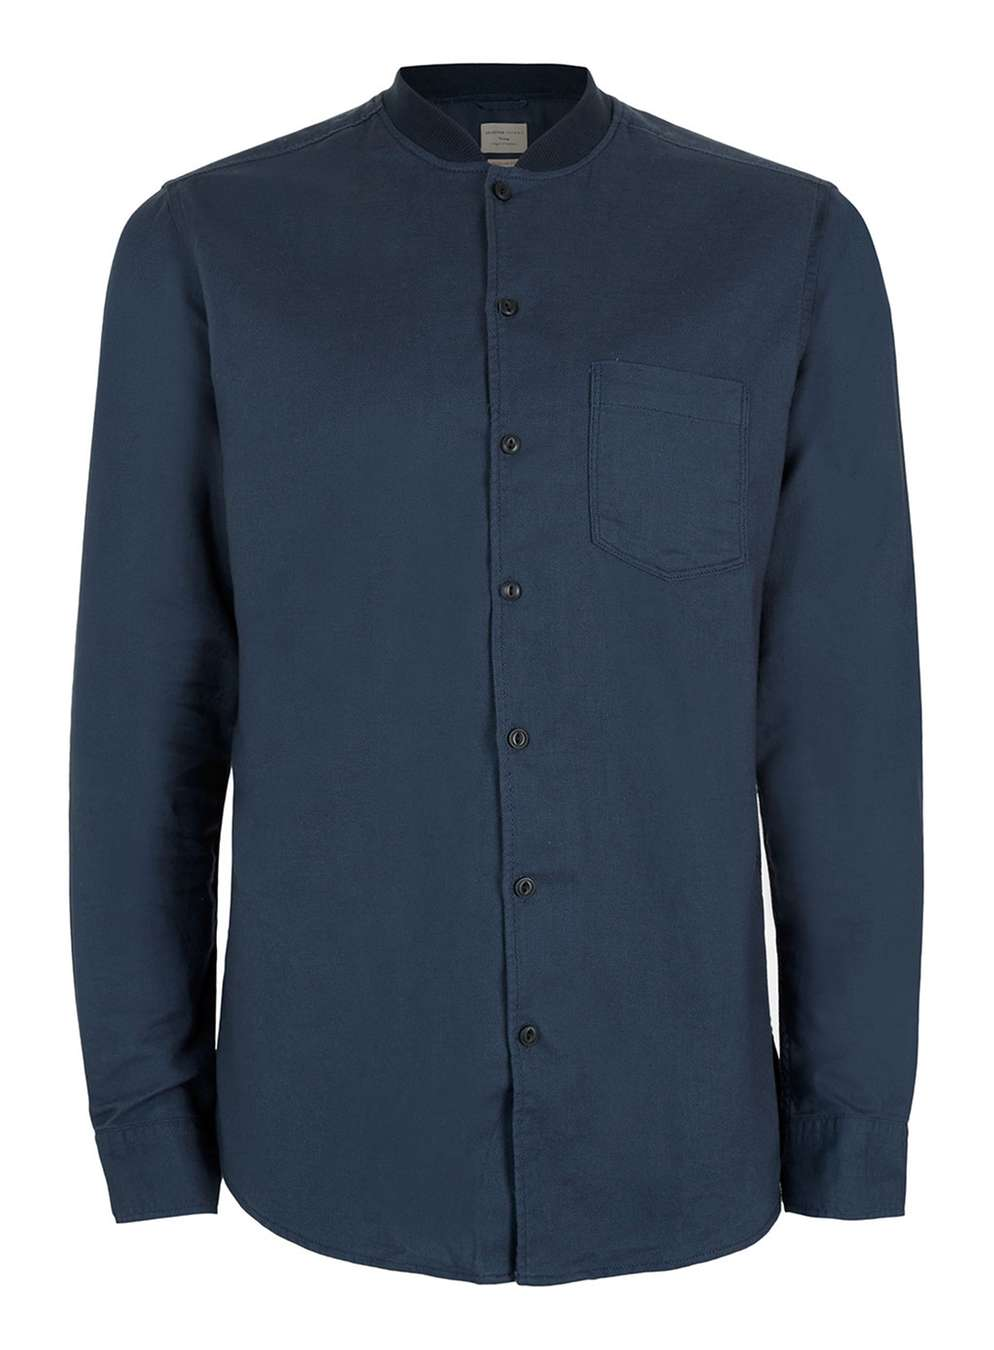 SELECTED HOMME ribbed collar cotton shirt, £45 ( topman.com )